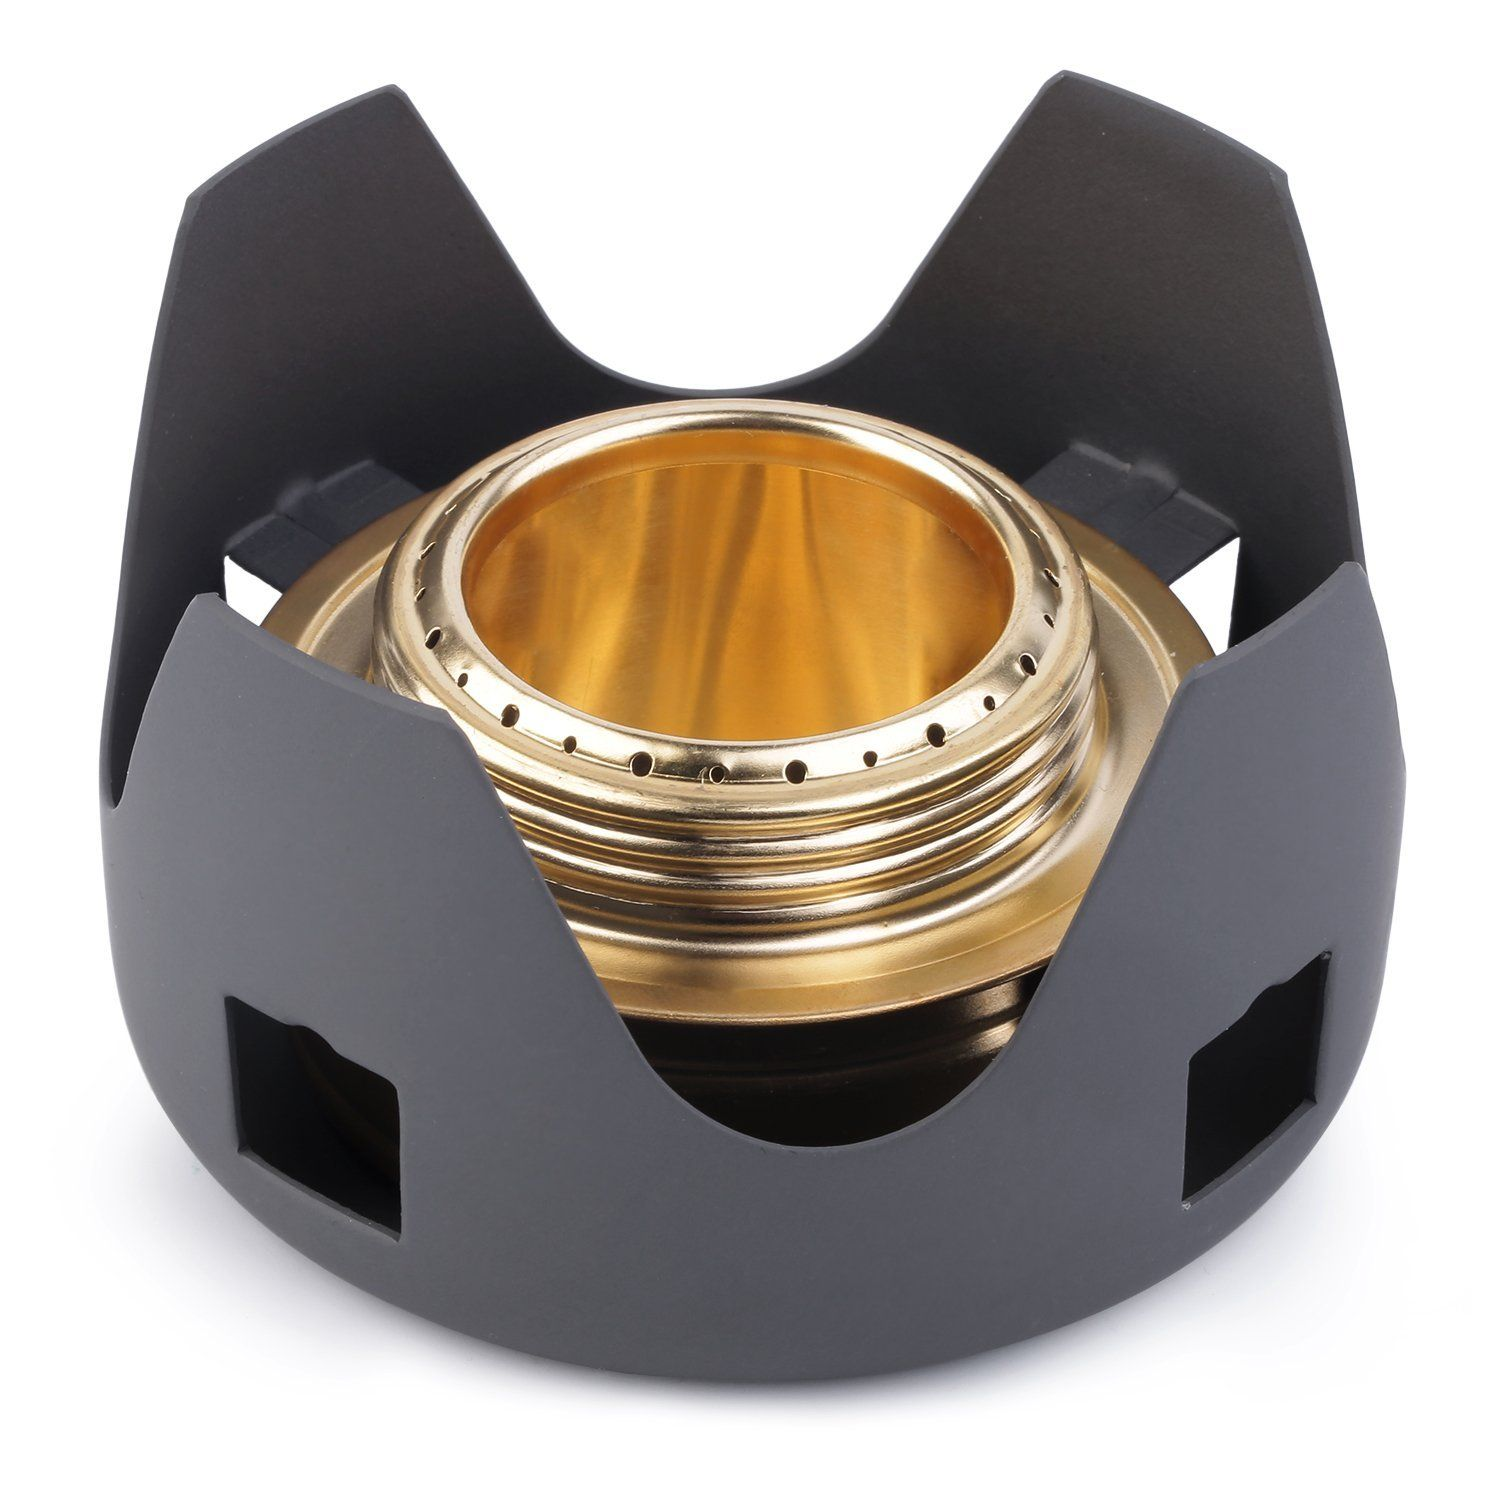 Outdoor Mini Portable Alcohol Stove Burner for Backpacking Hiking Camping